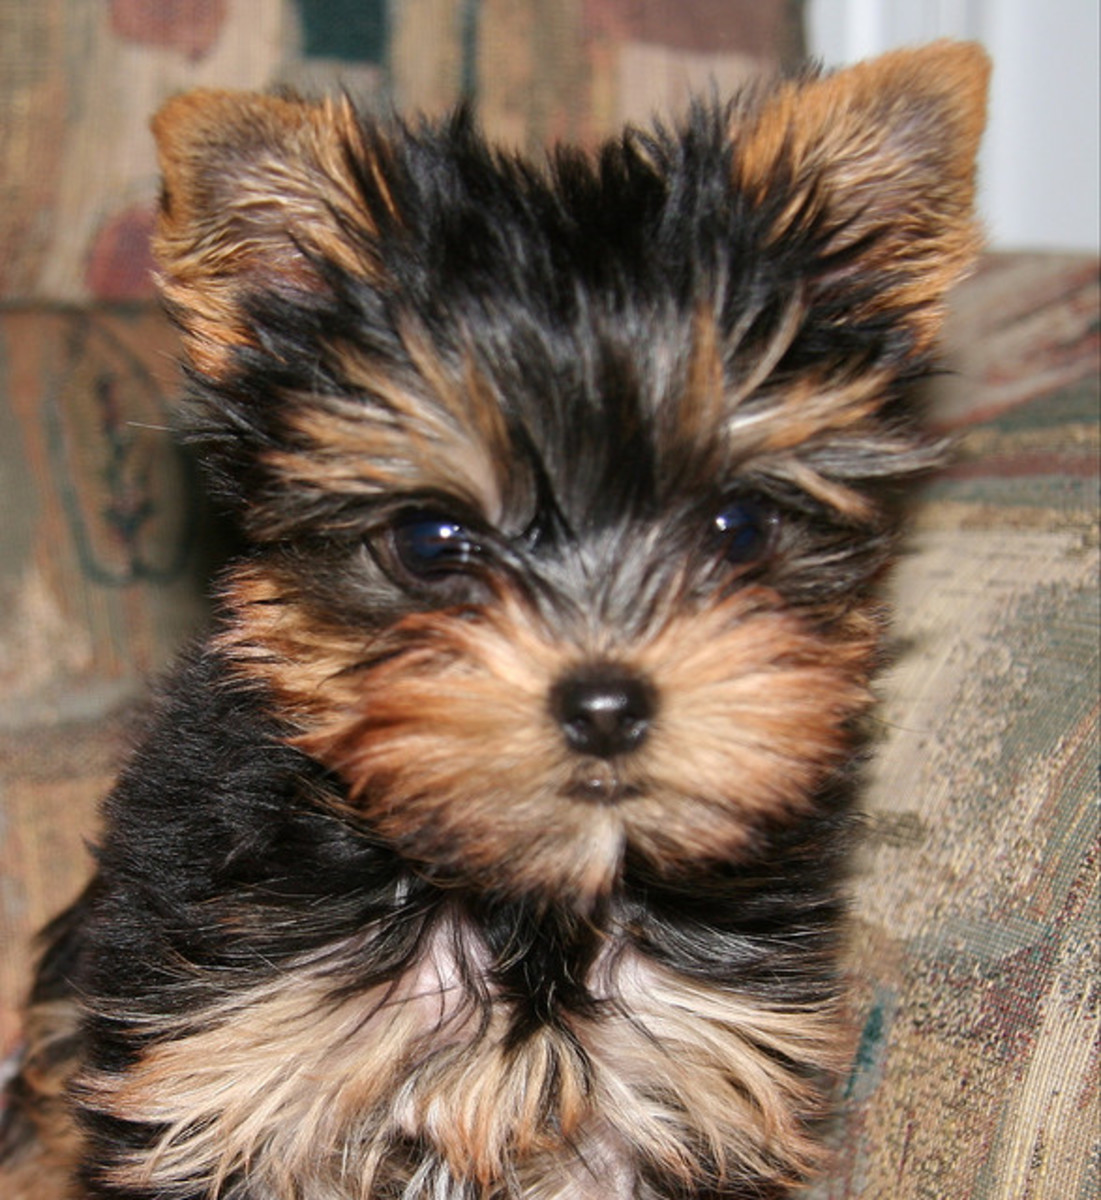 A Yorkshire Terrier puppy.